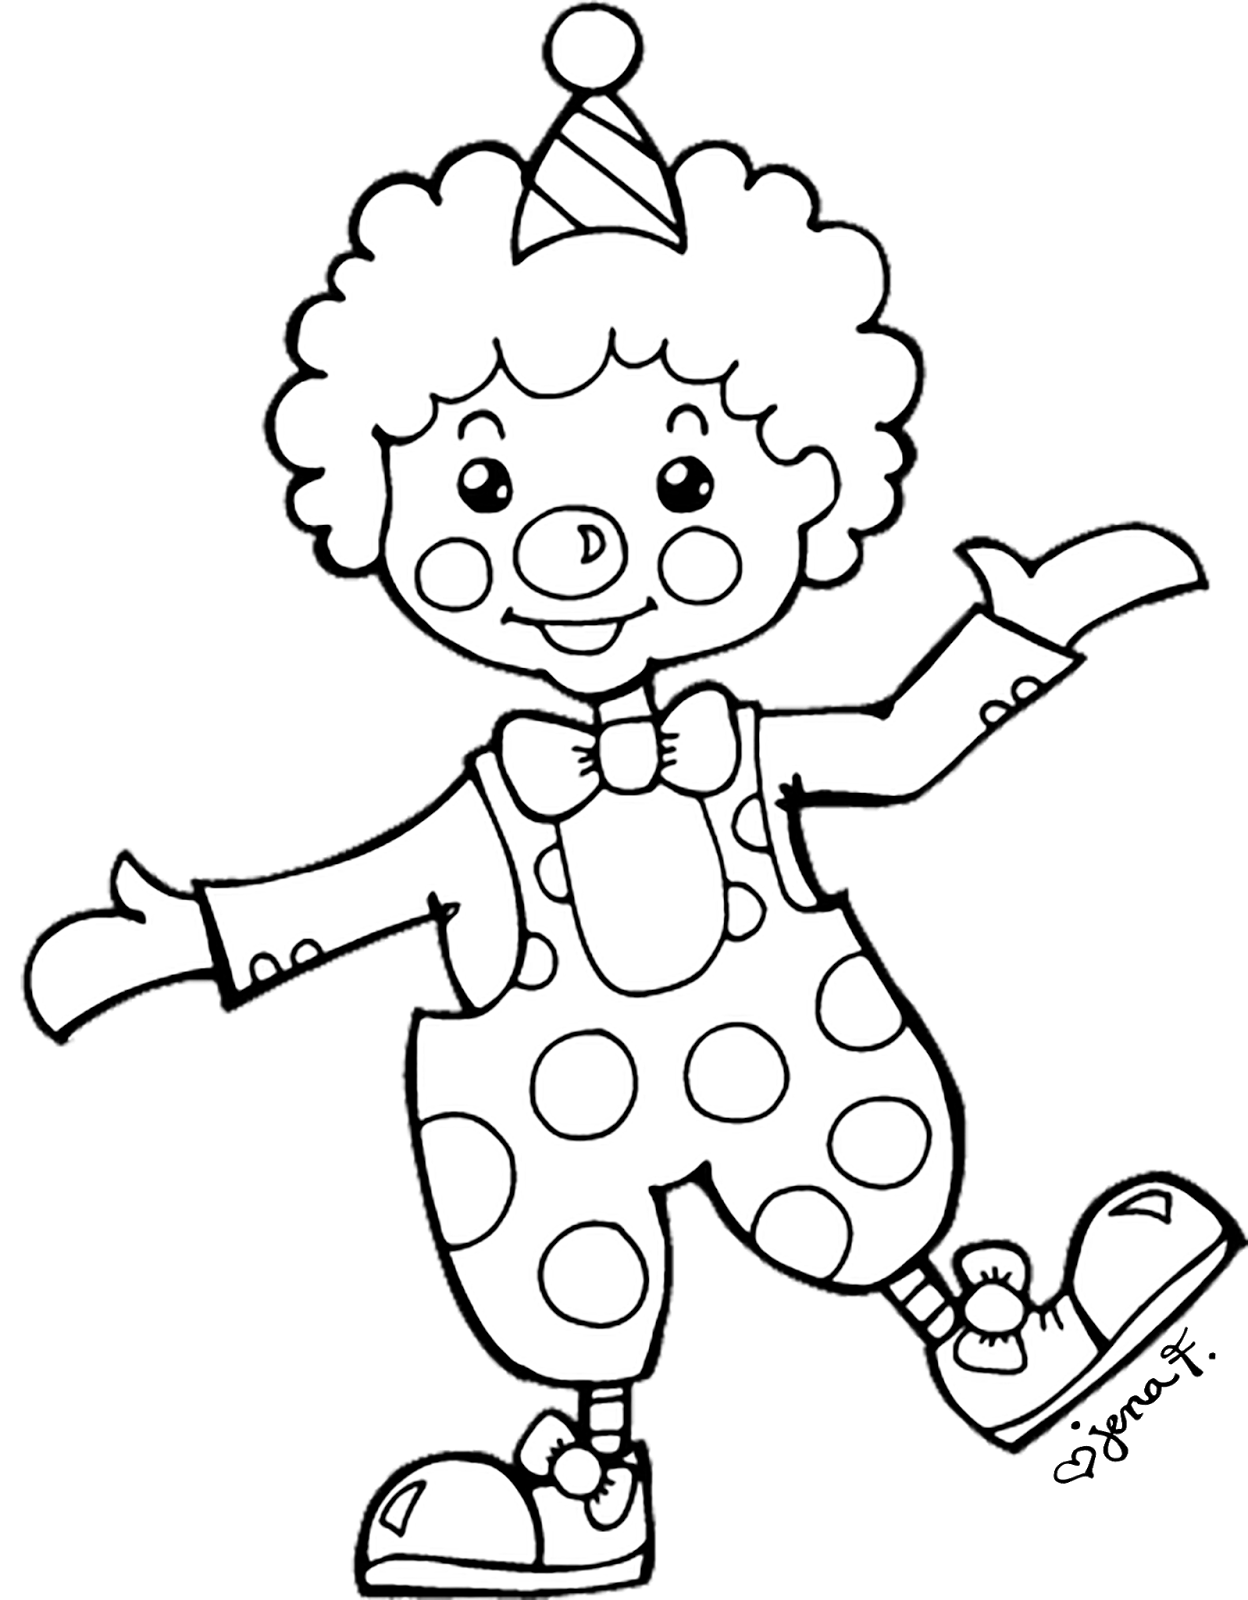 clown face coloring page clown coloring pages for kids coloring worksheets 8 clown face coloring page